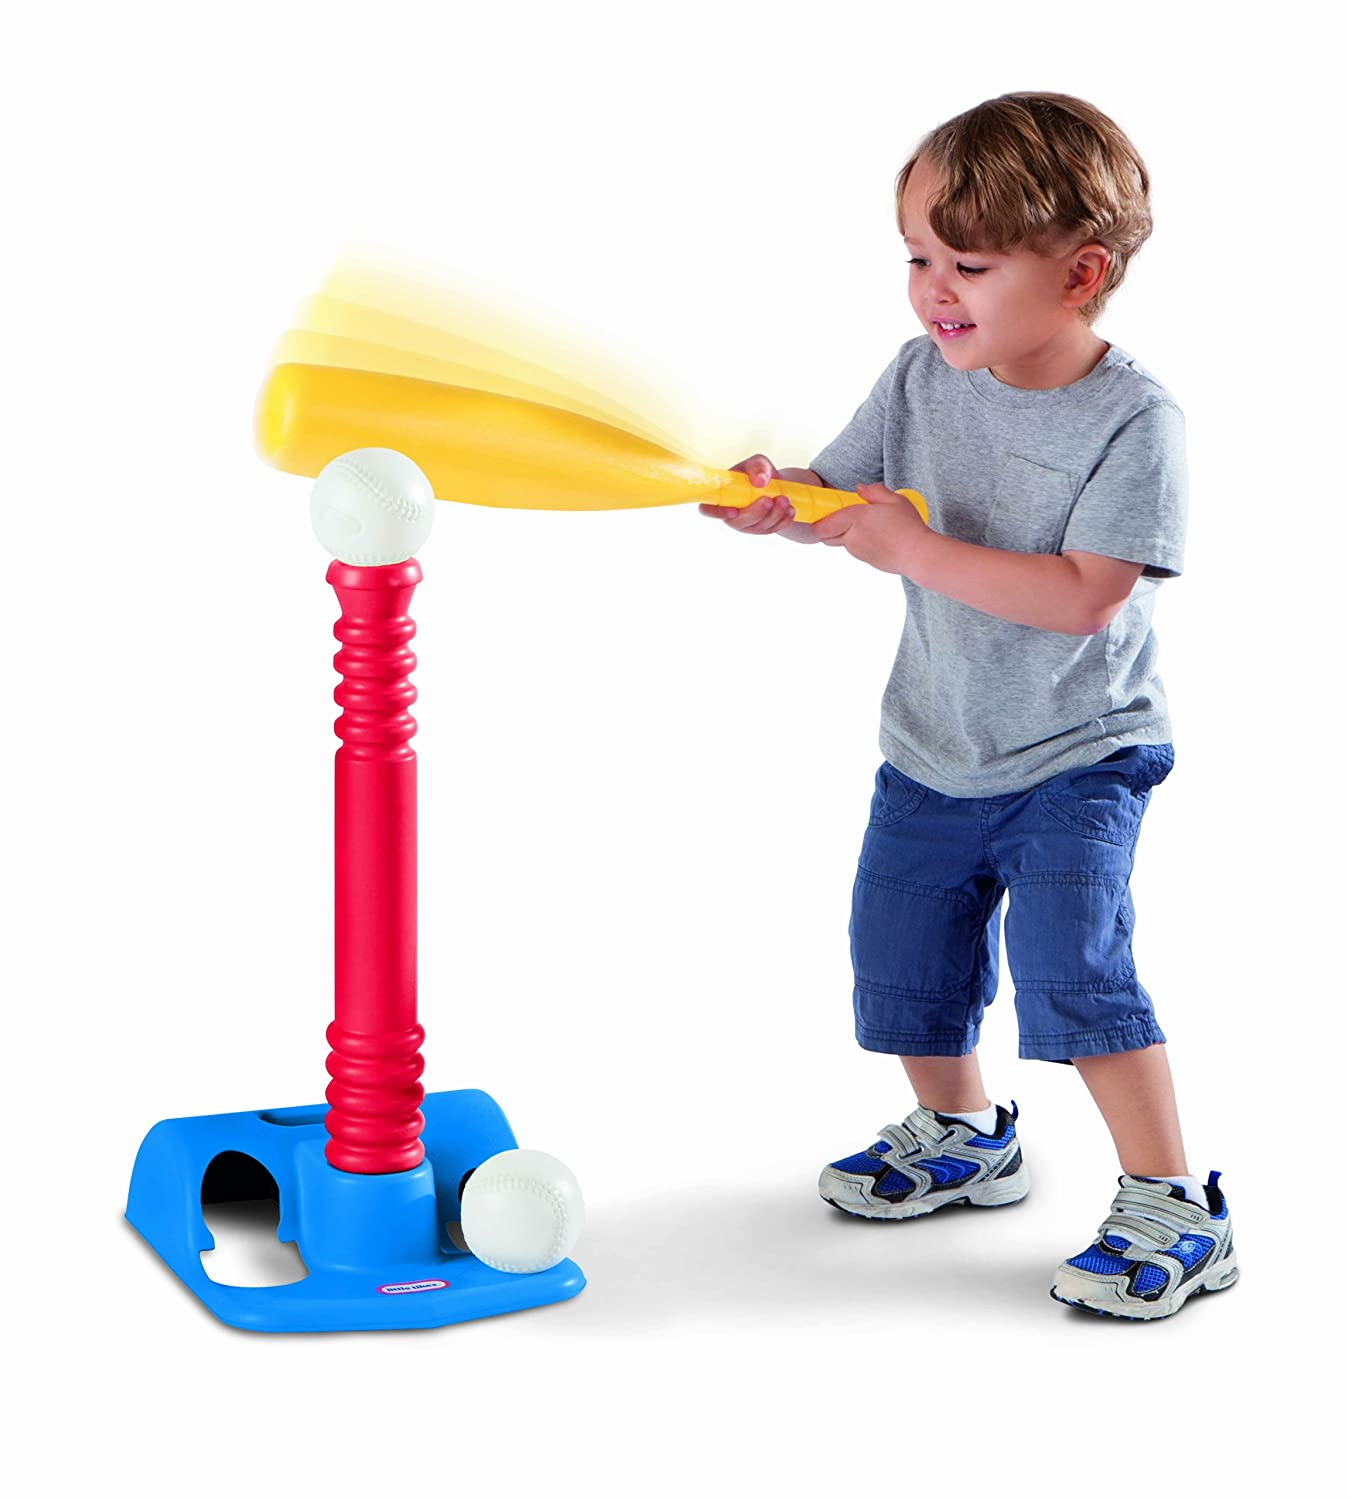 Popular Toys For Boys : Best toys for kids the sporty year